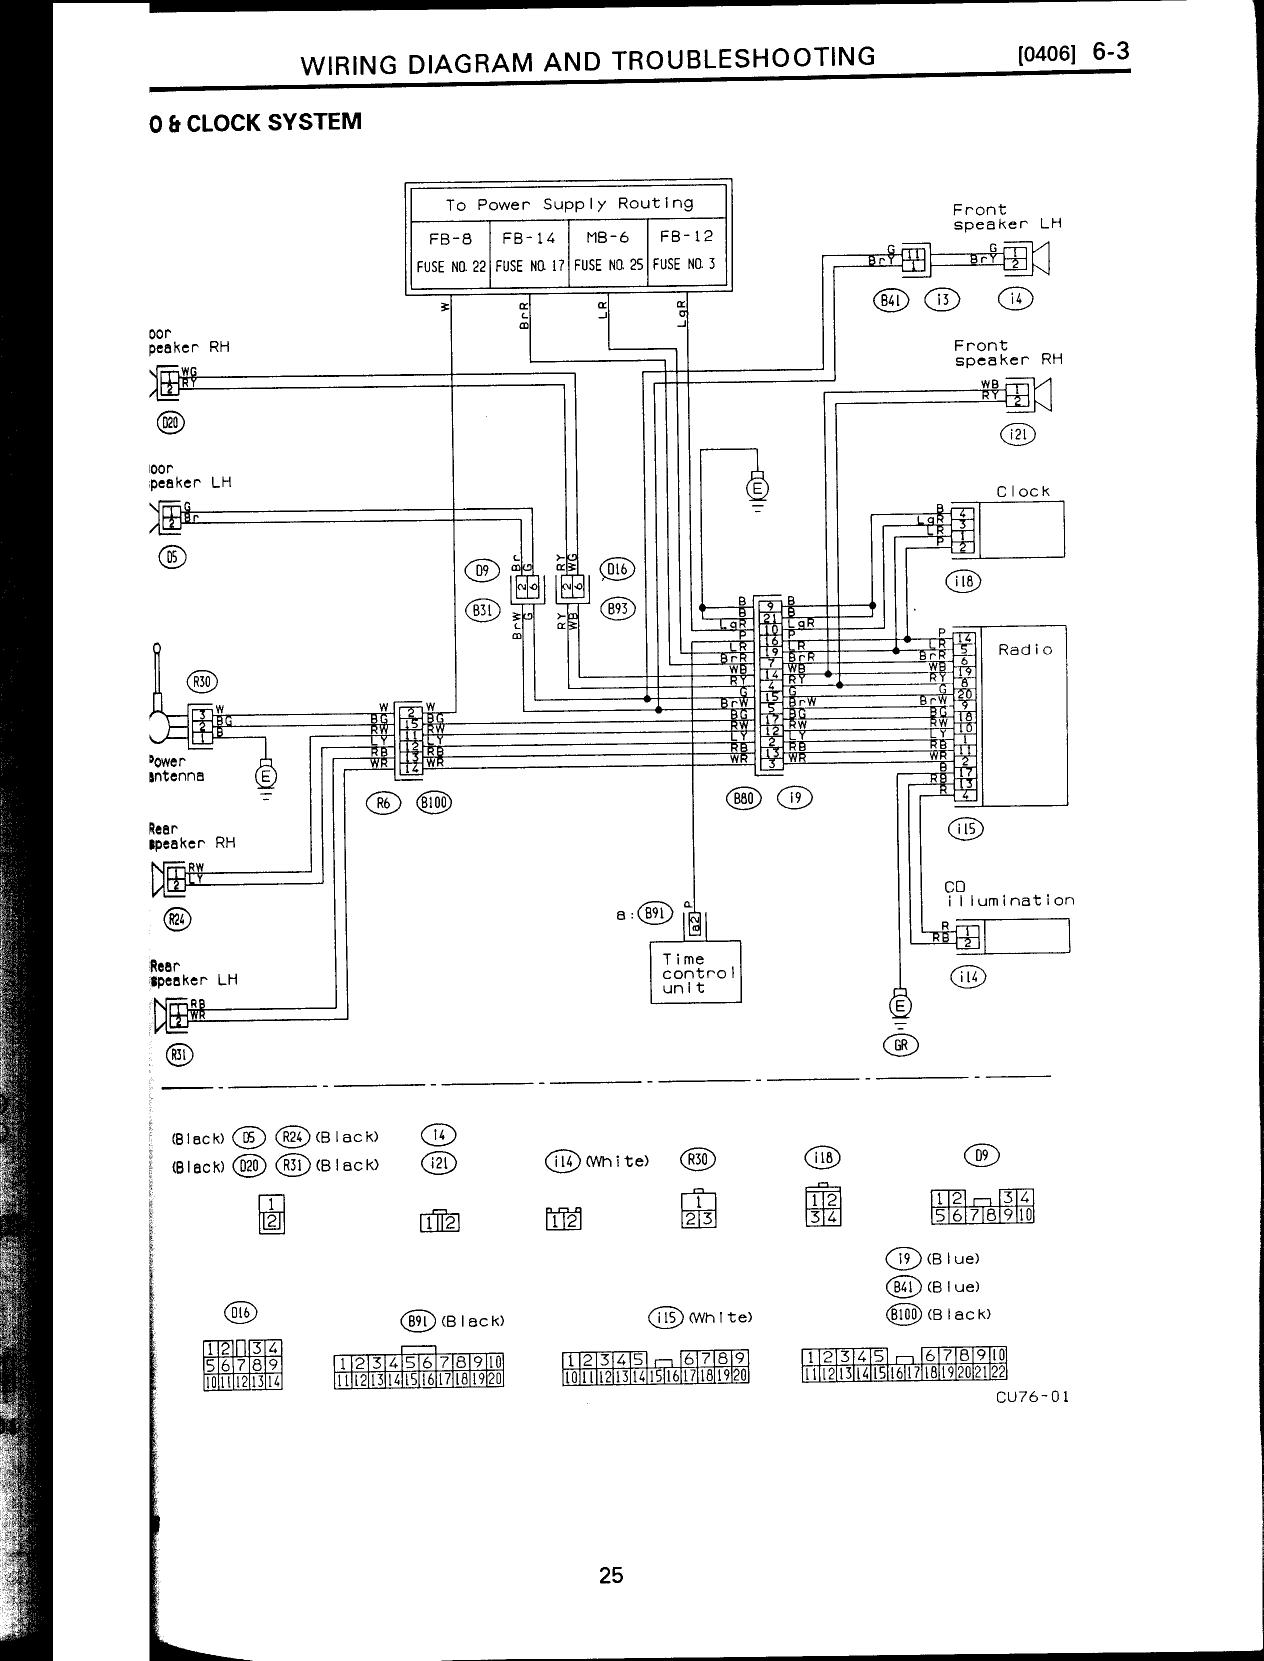 1998 Subaru Impreza Radio Wiring Diagram Solutions